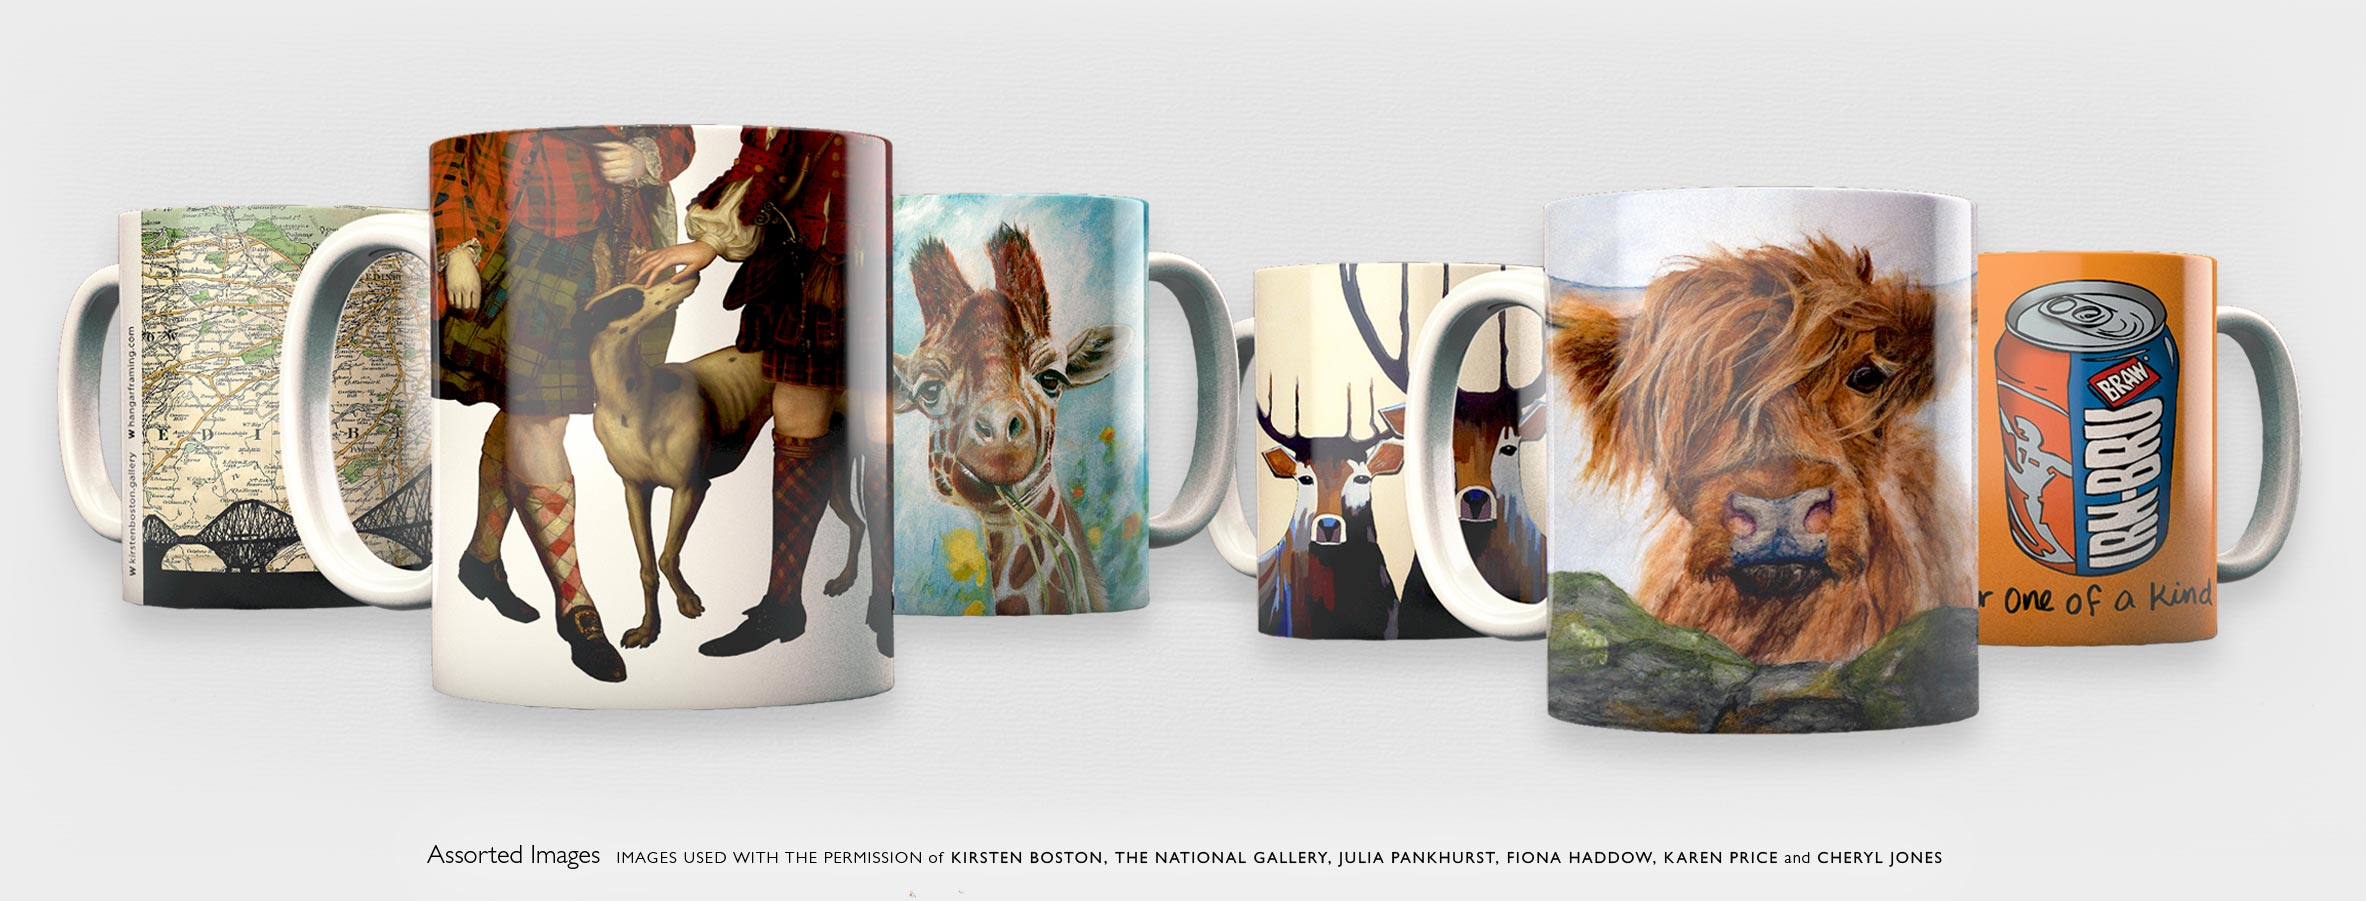 A selection of 6 mugs featuring images by Scottish artists